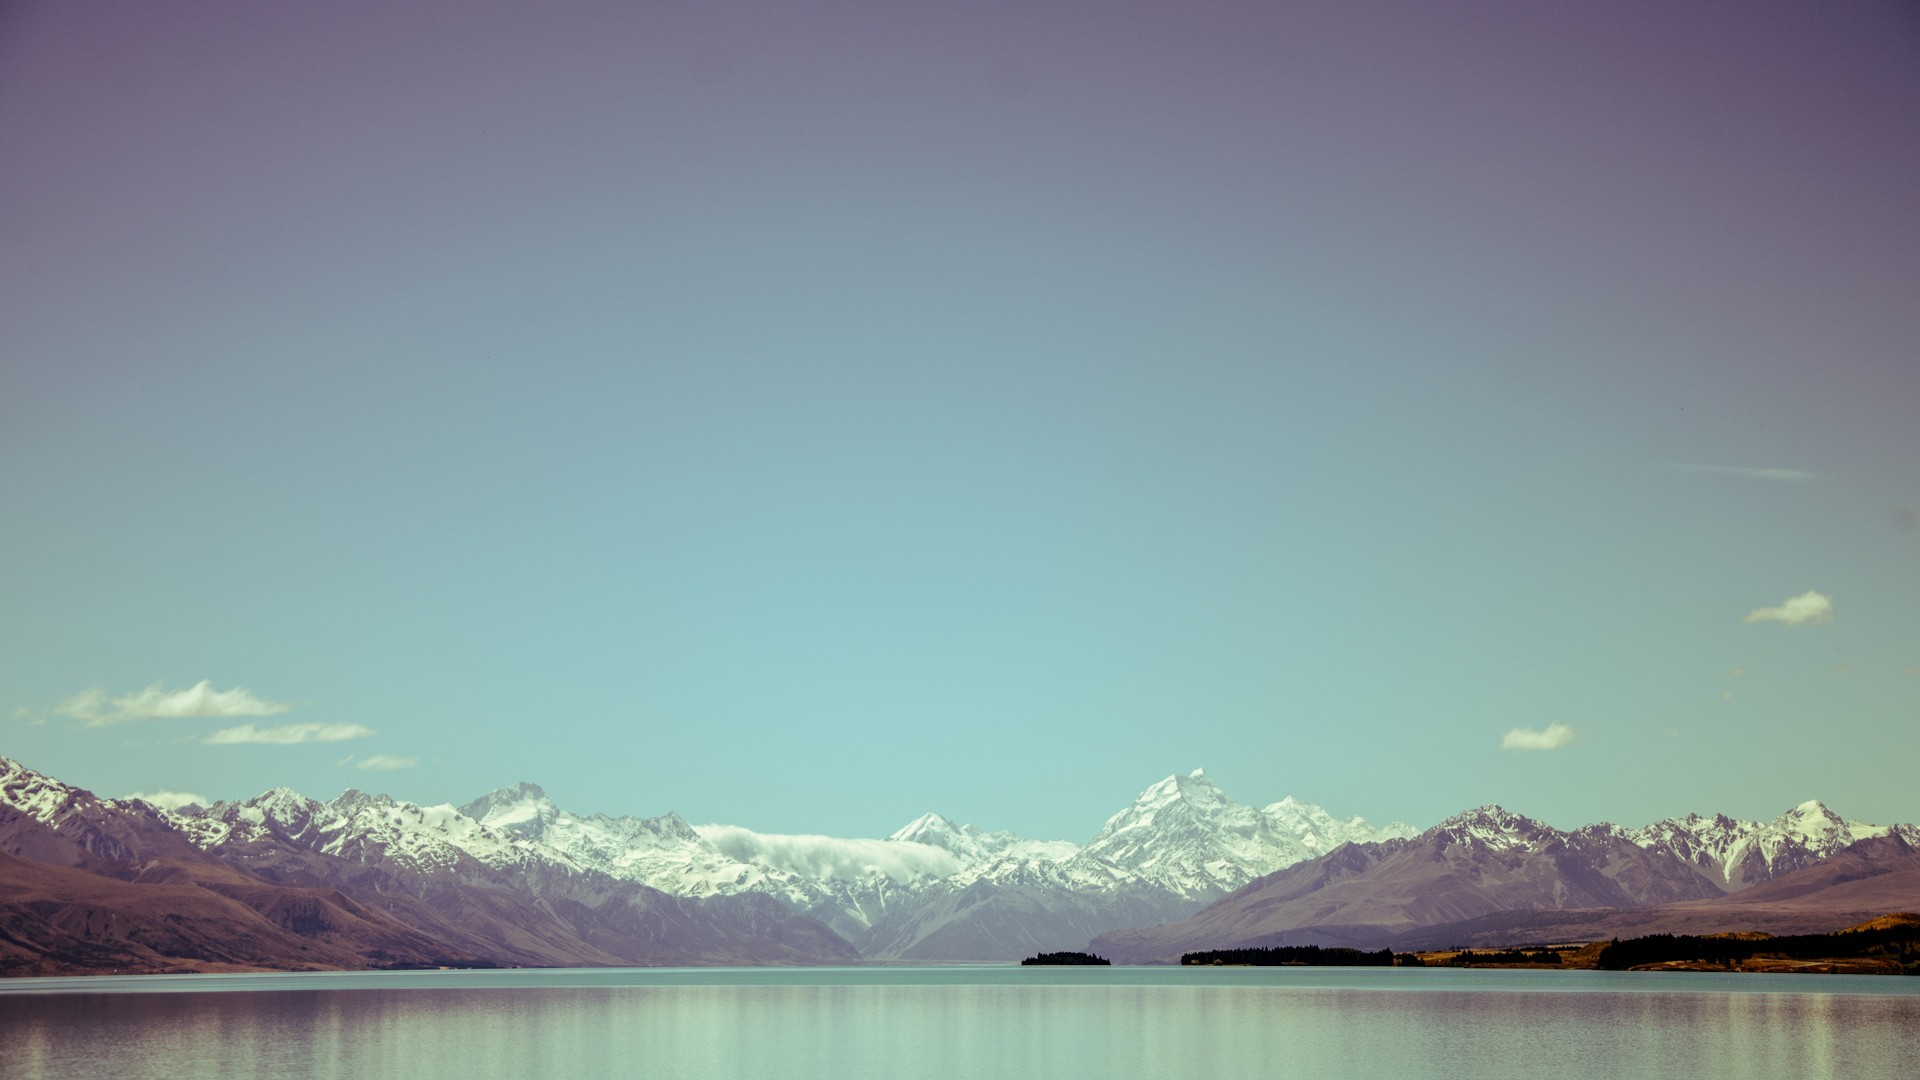 Mountains Lake Alps Snow Water Clear Sky 1920x1080